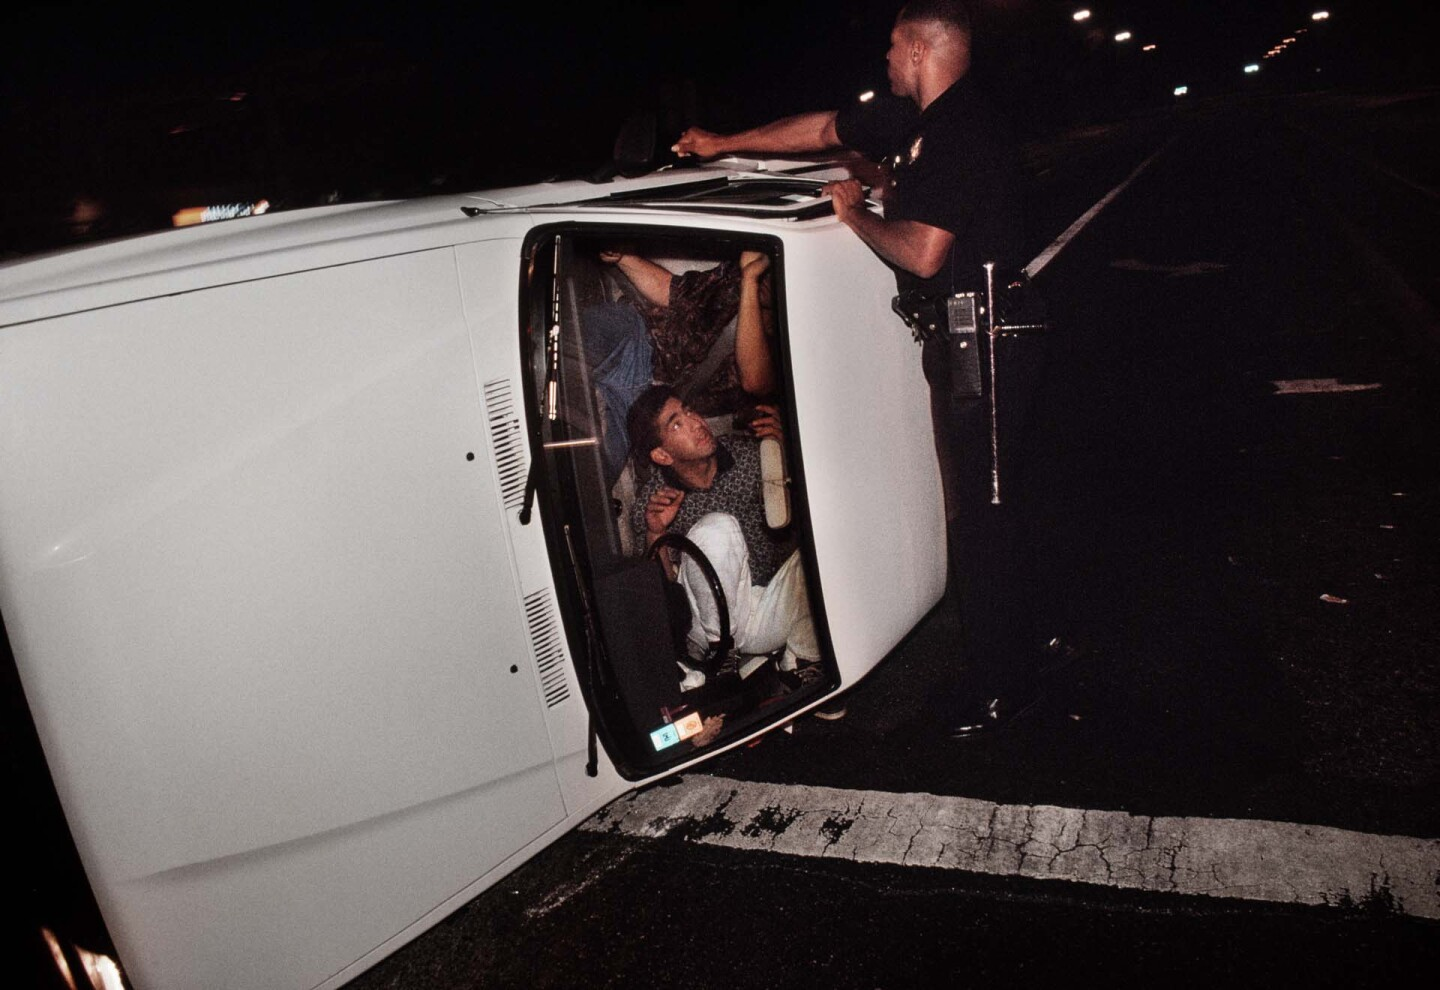 Pacific Division Officer Hoskins tries to pry open the door of a truck involved in a accident that left the driver and passenger locked in the overturned vehicle. | Joseph Rodriguez